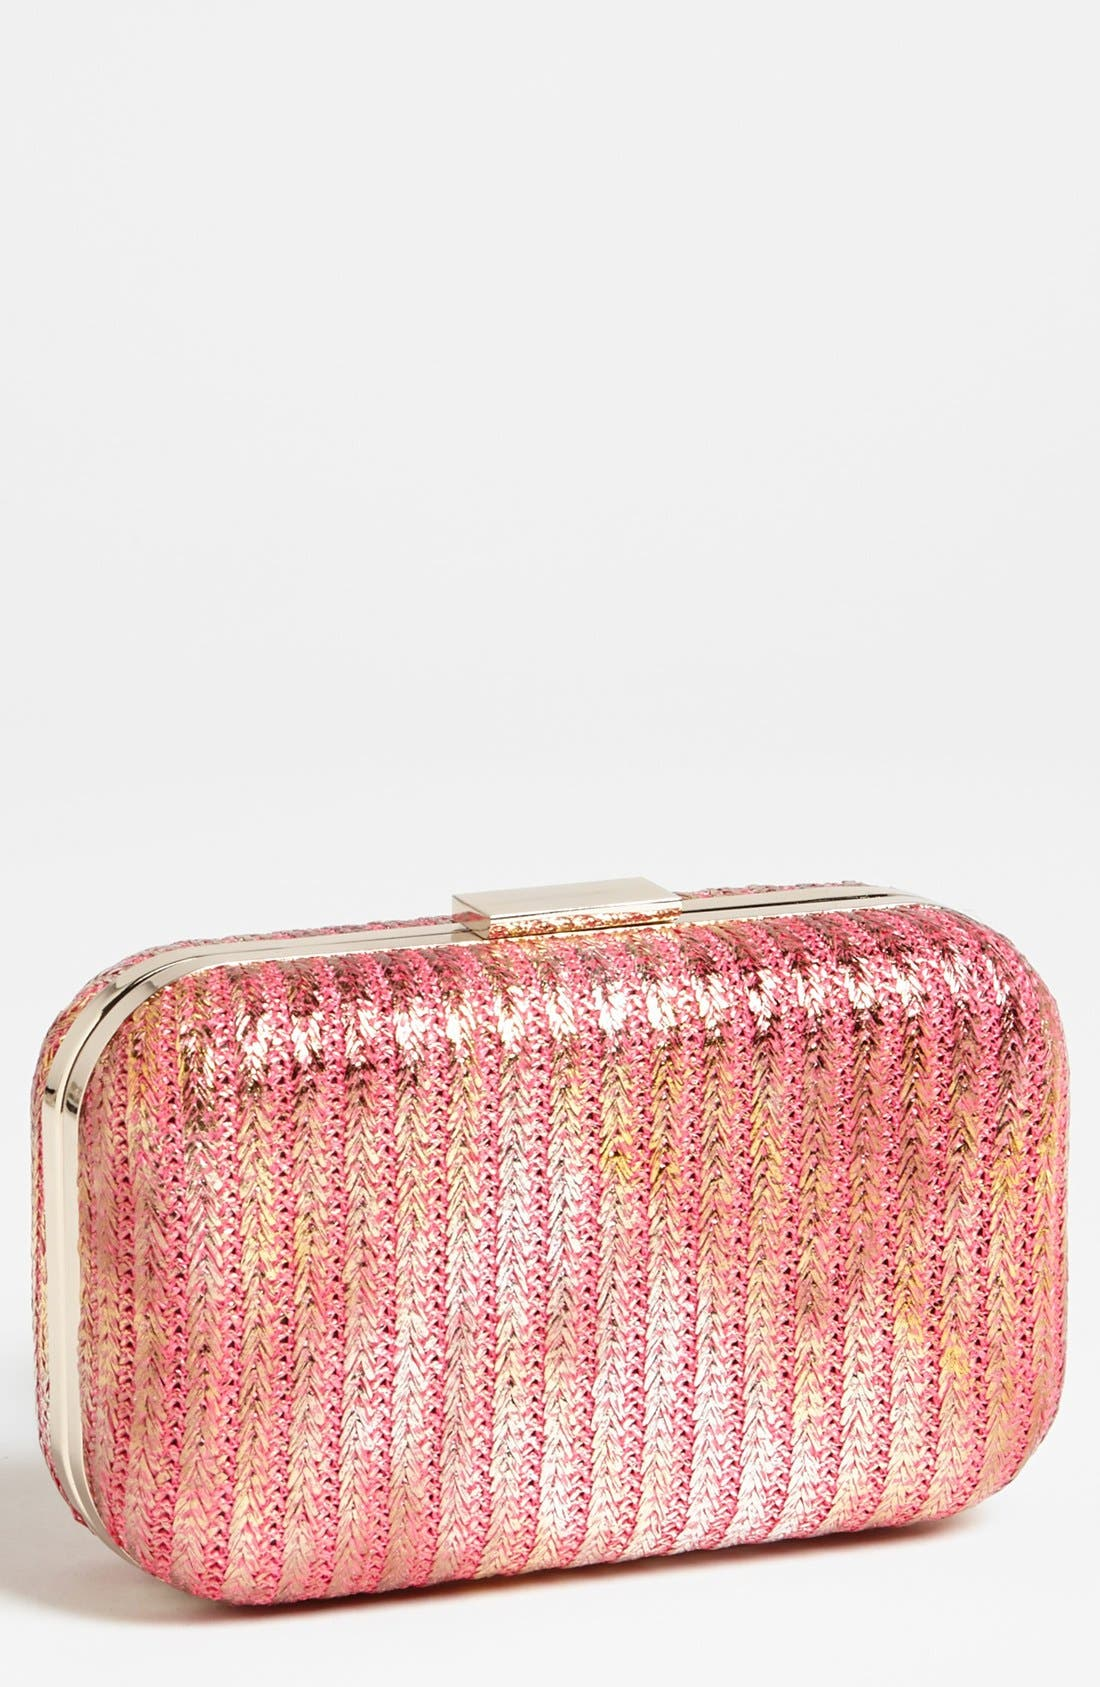 Main Image - Expressions NYC Metallic Box Clutch